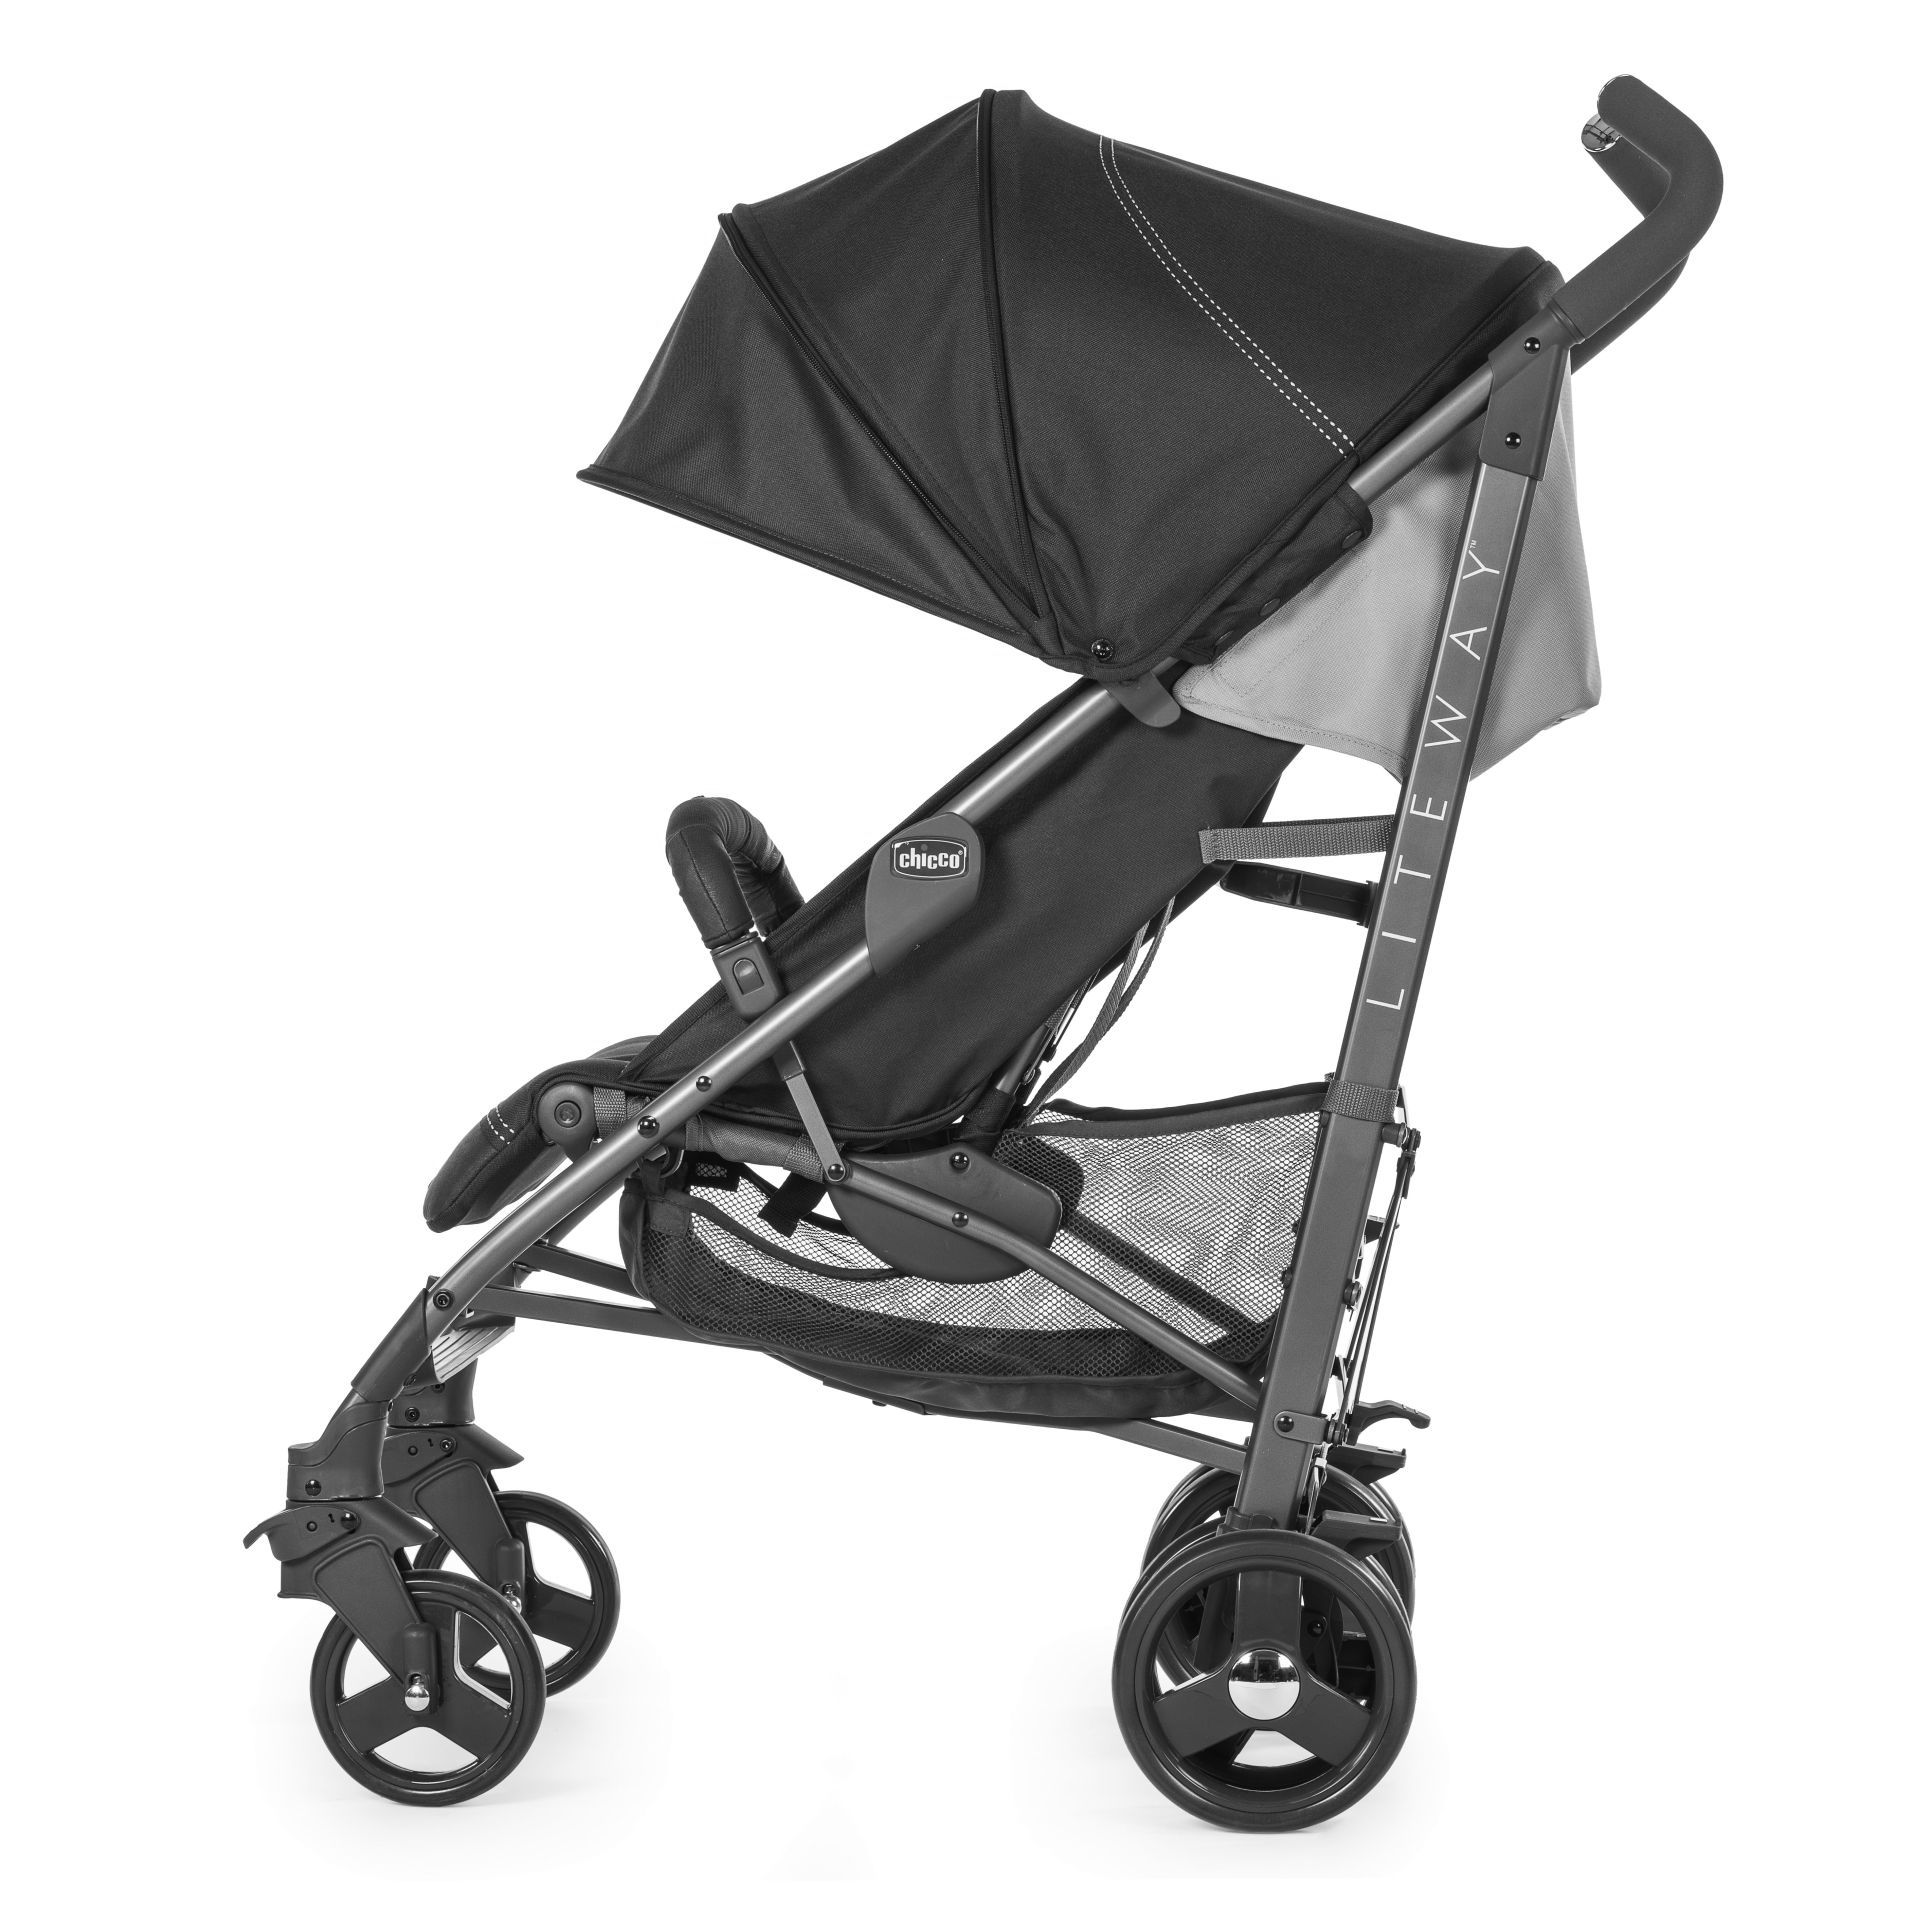 c3251b786 ... 2 Chicco Pushchair Lite Way 3 JET BLACK 2019 - large image 3 ...